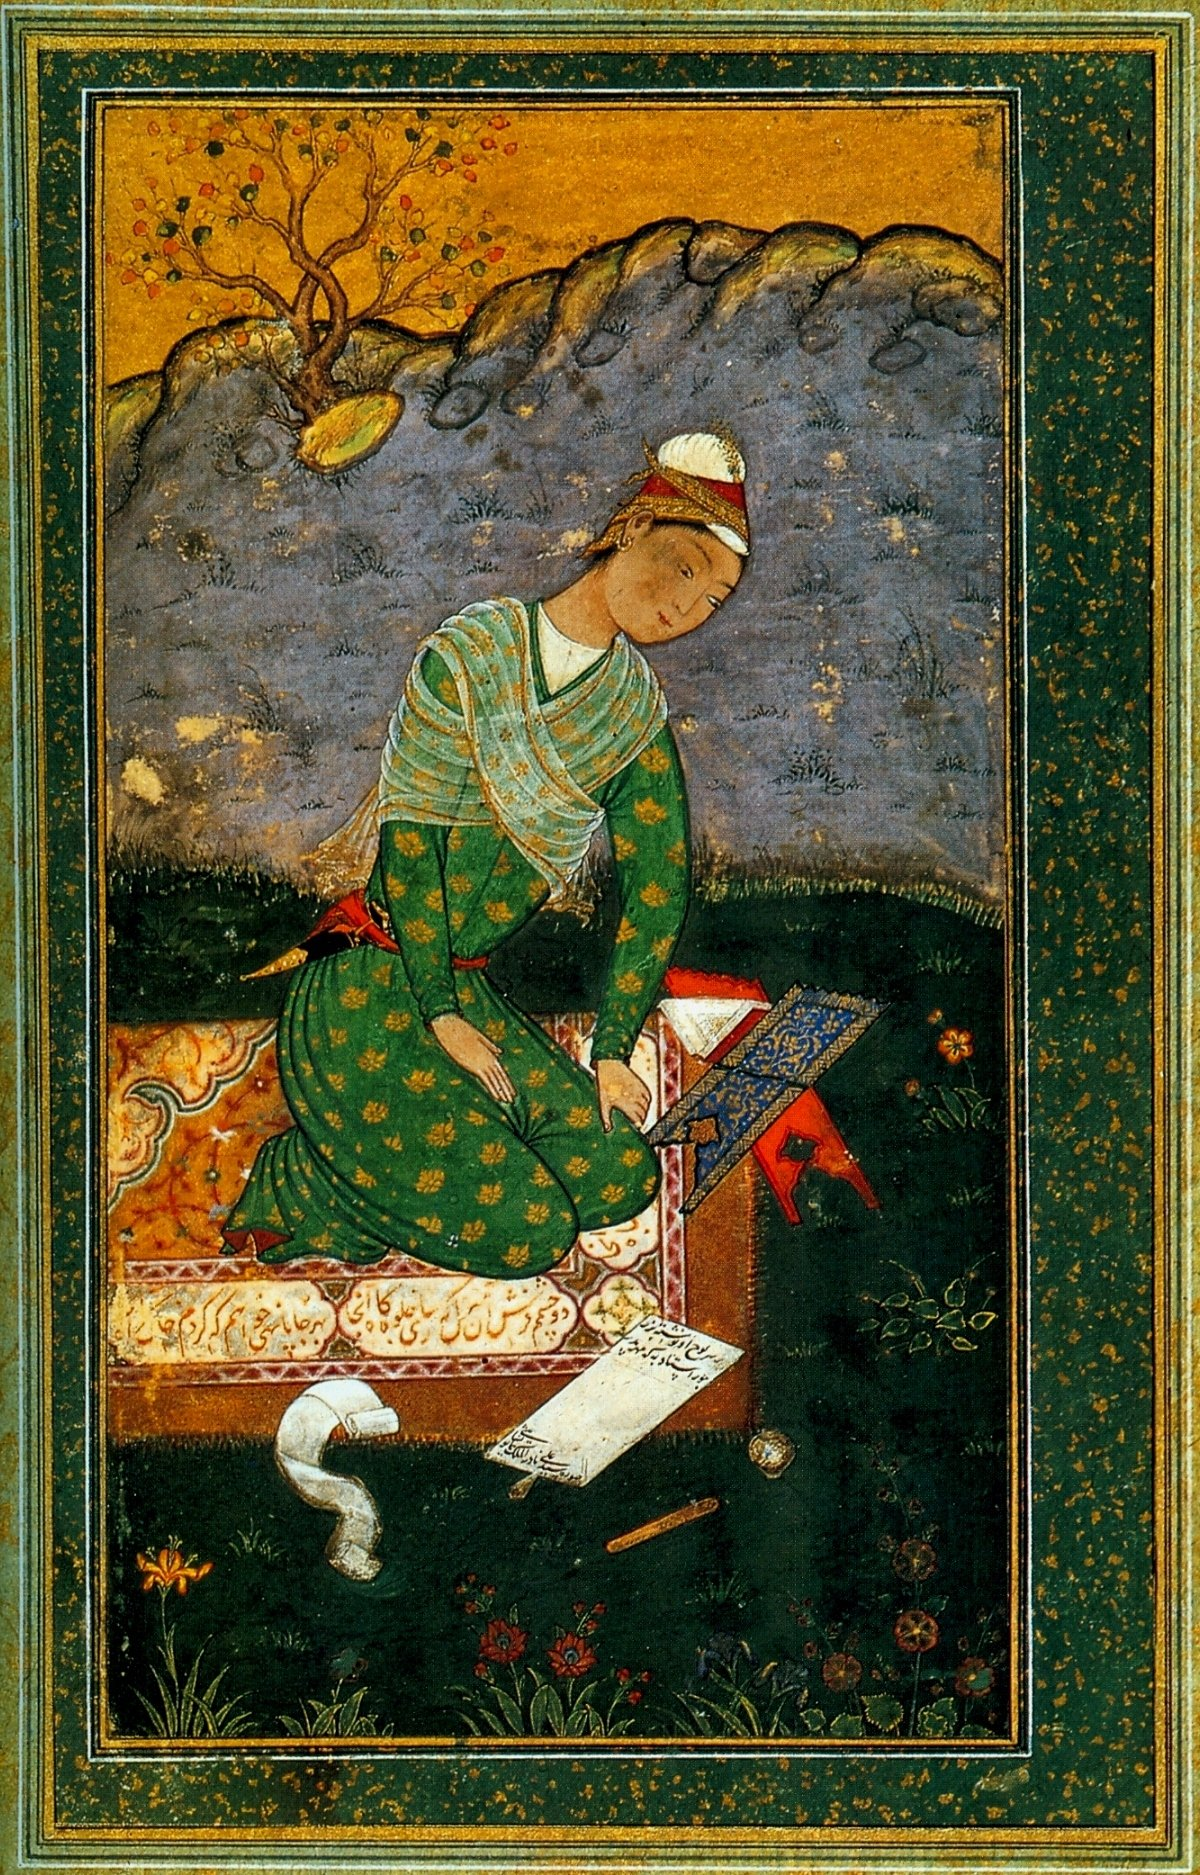 Portrait of a young writer, Mir Sayyid Ali, 1550